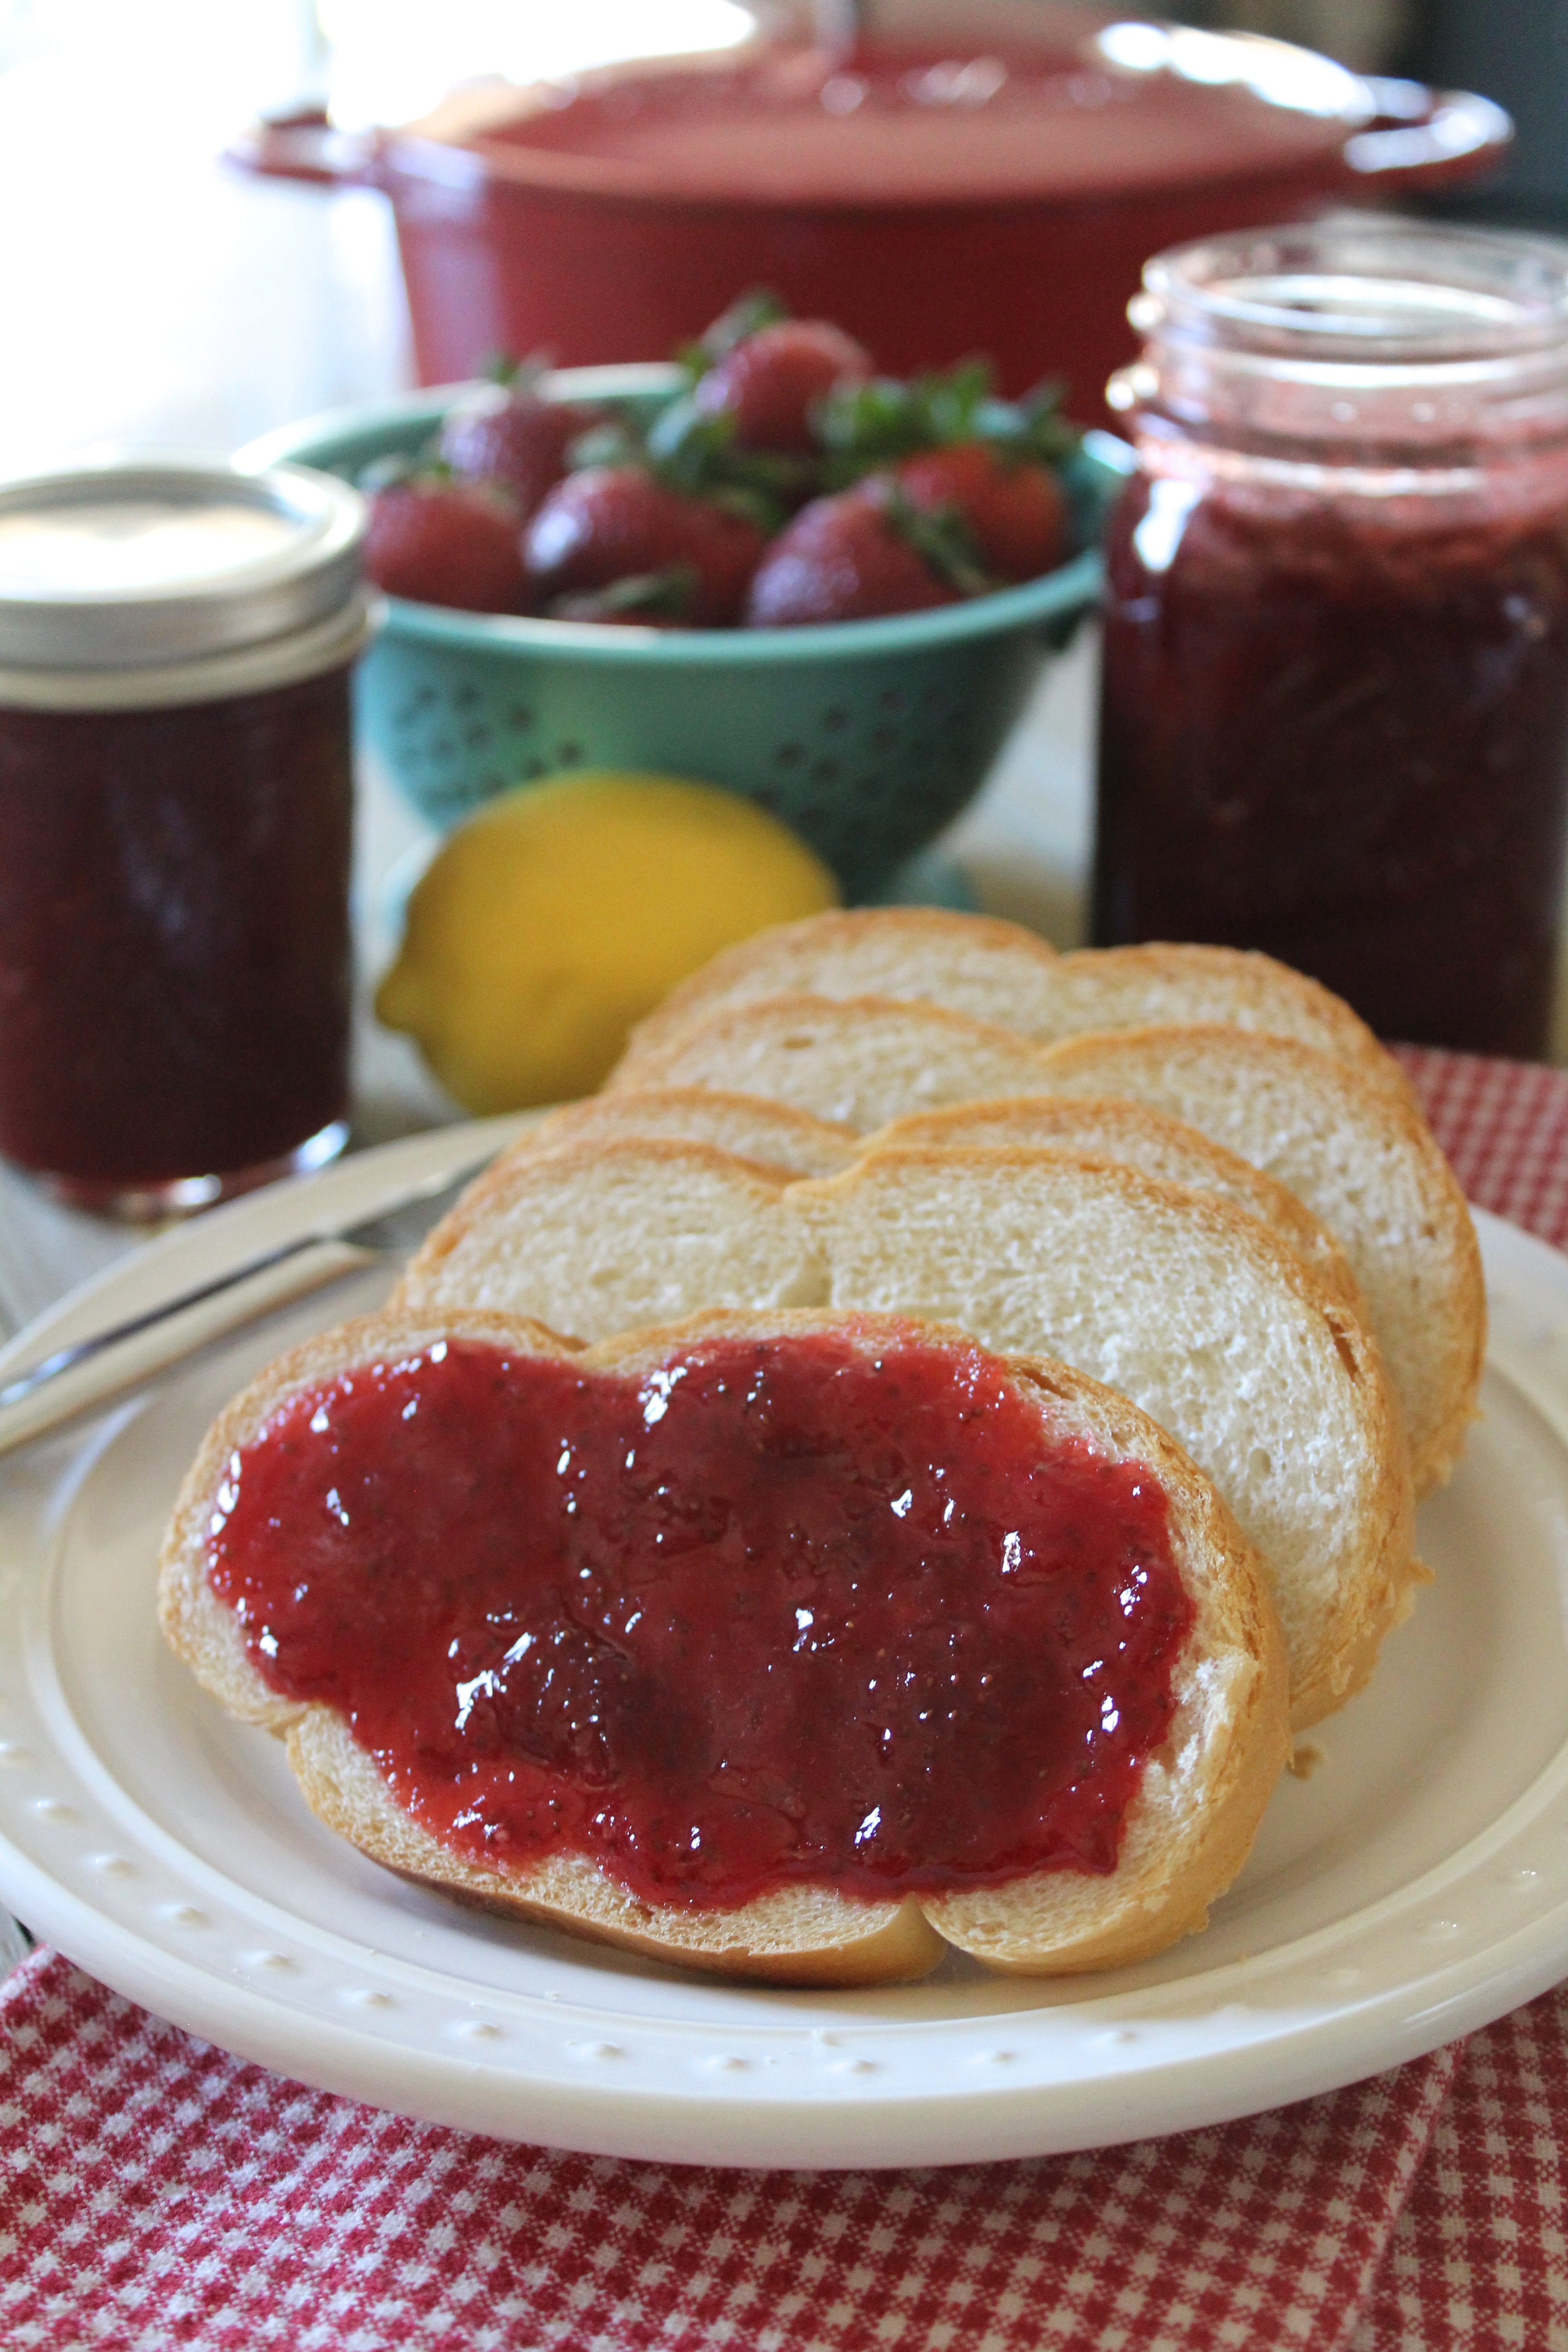 We cook thick strawberry jam